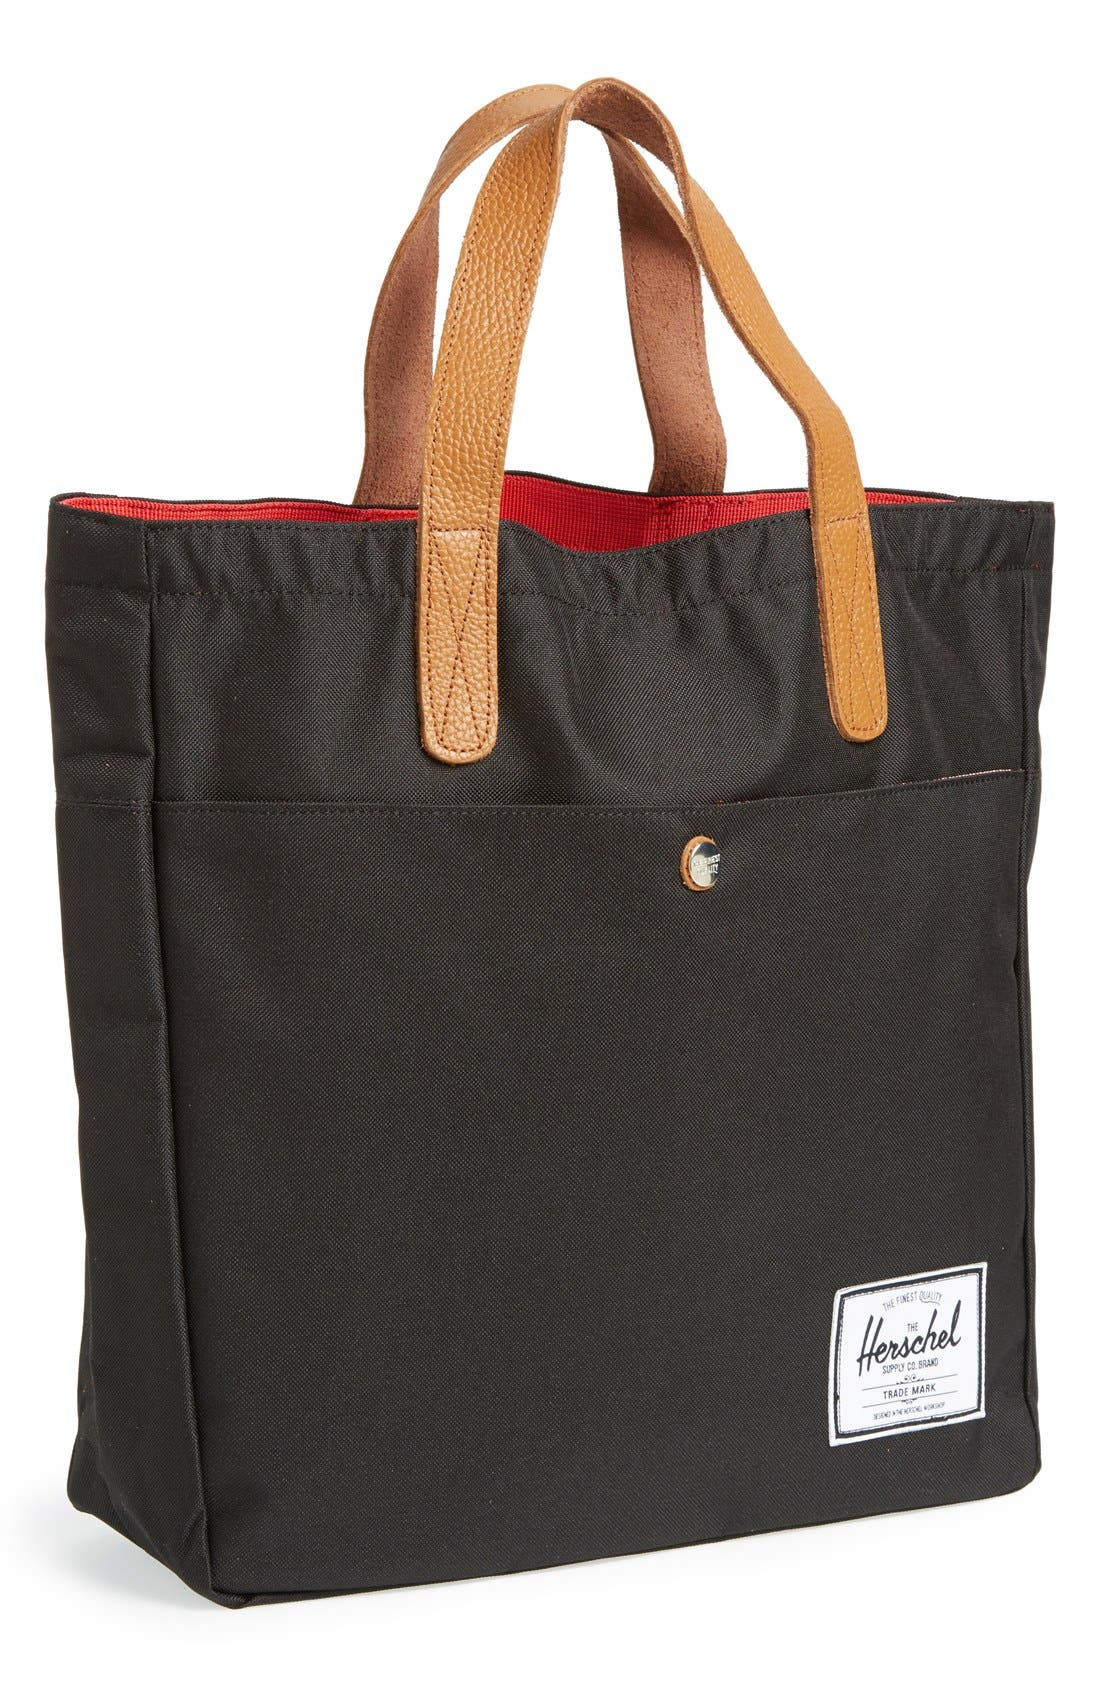 Alternate Image 1 Selected - Herschel Supply Co. 'Brohm' Canvas Tote